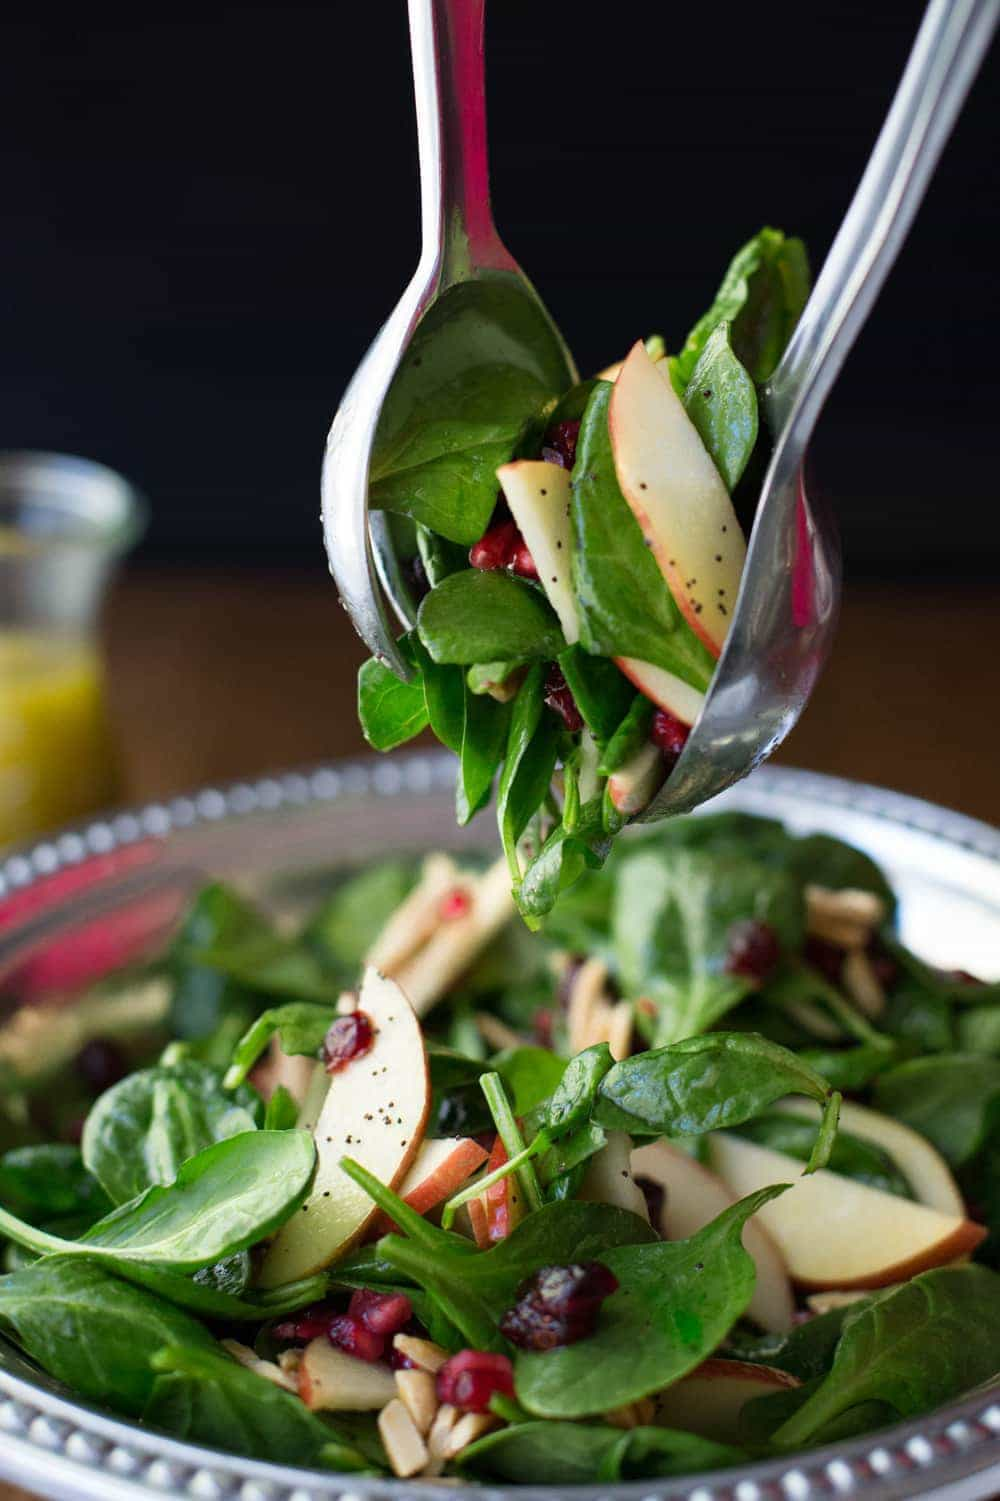 Apple Cranberry Spinach Salad - an insanely delicious, super healthy salad - perfect for any fall/holiday get together! thecafesucrefarine.com